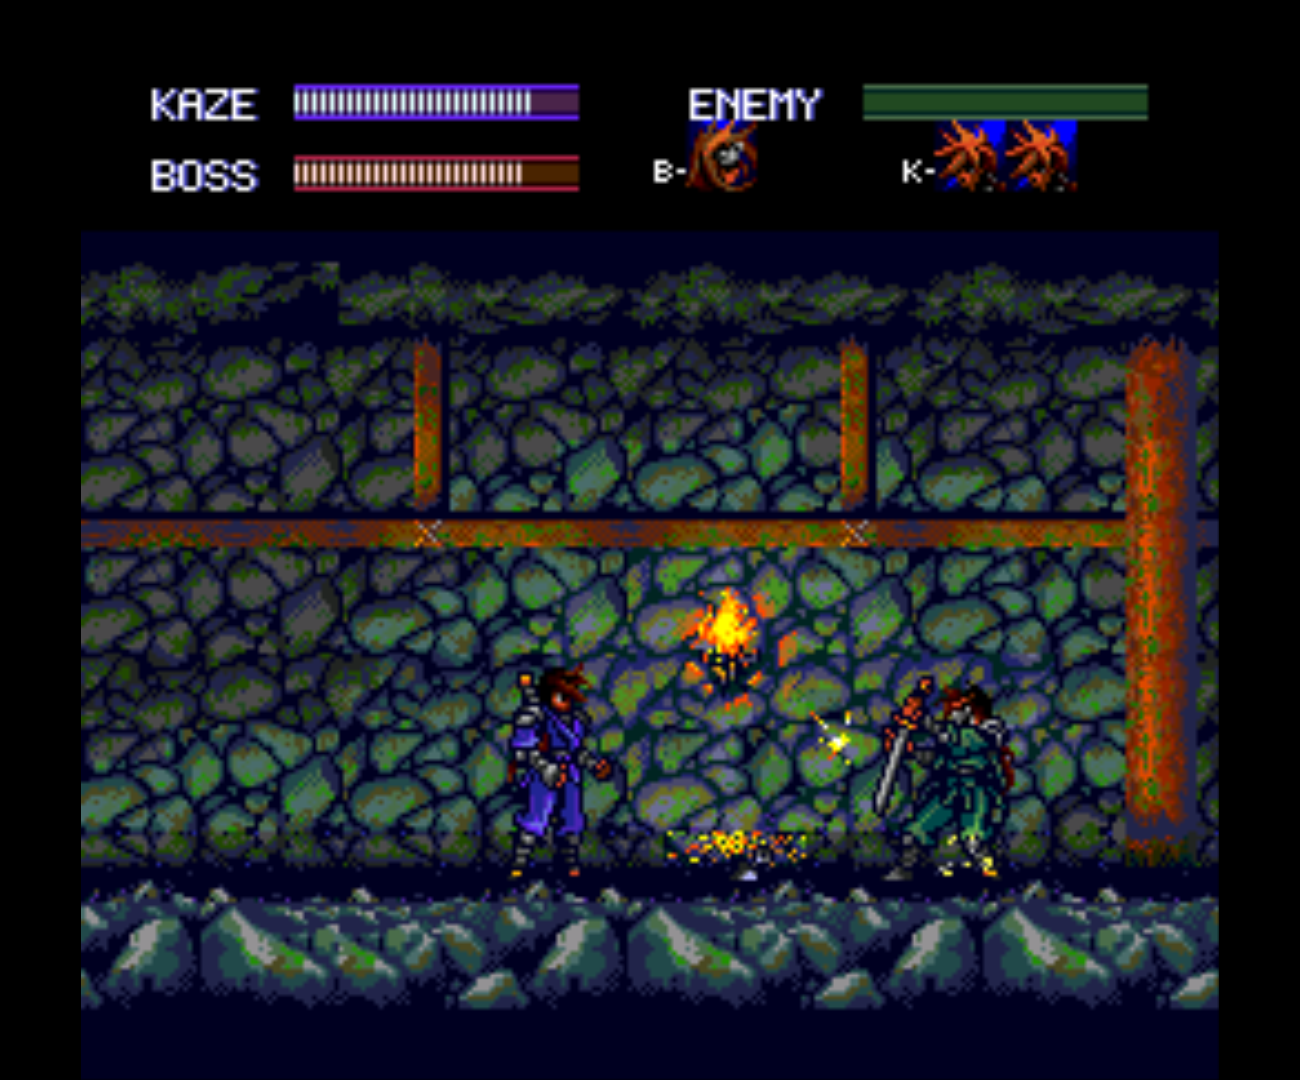 Figure 12 - Bosses can be thrown just like normal enemies but they are stronger